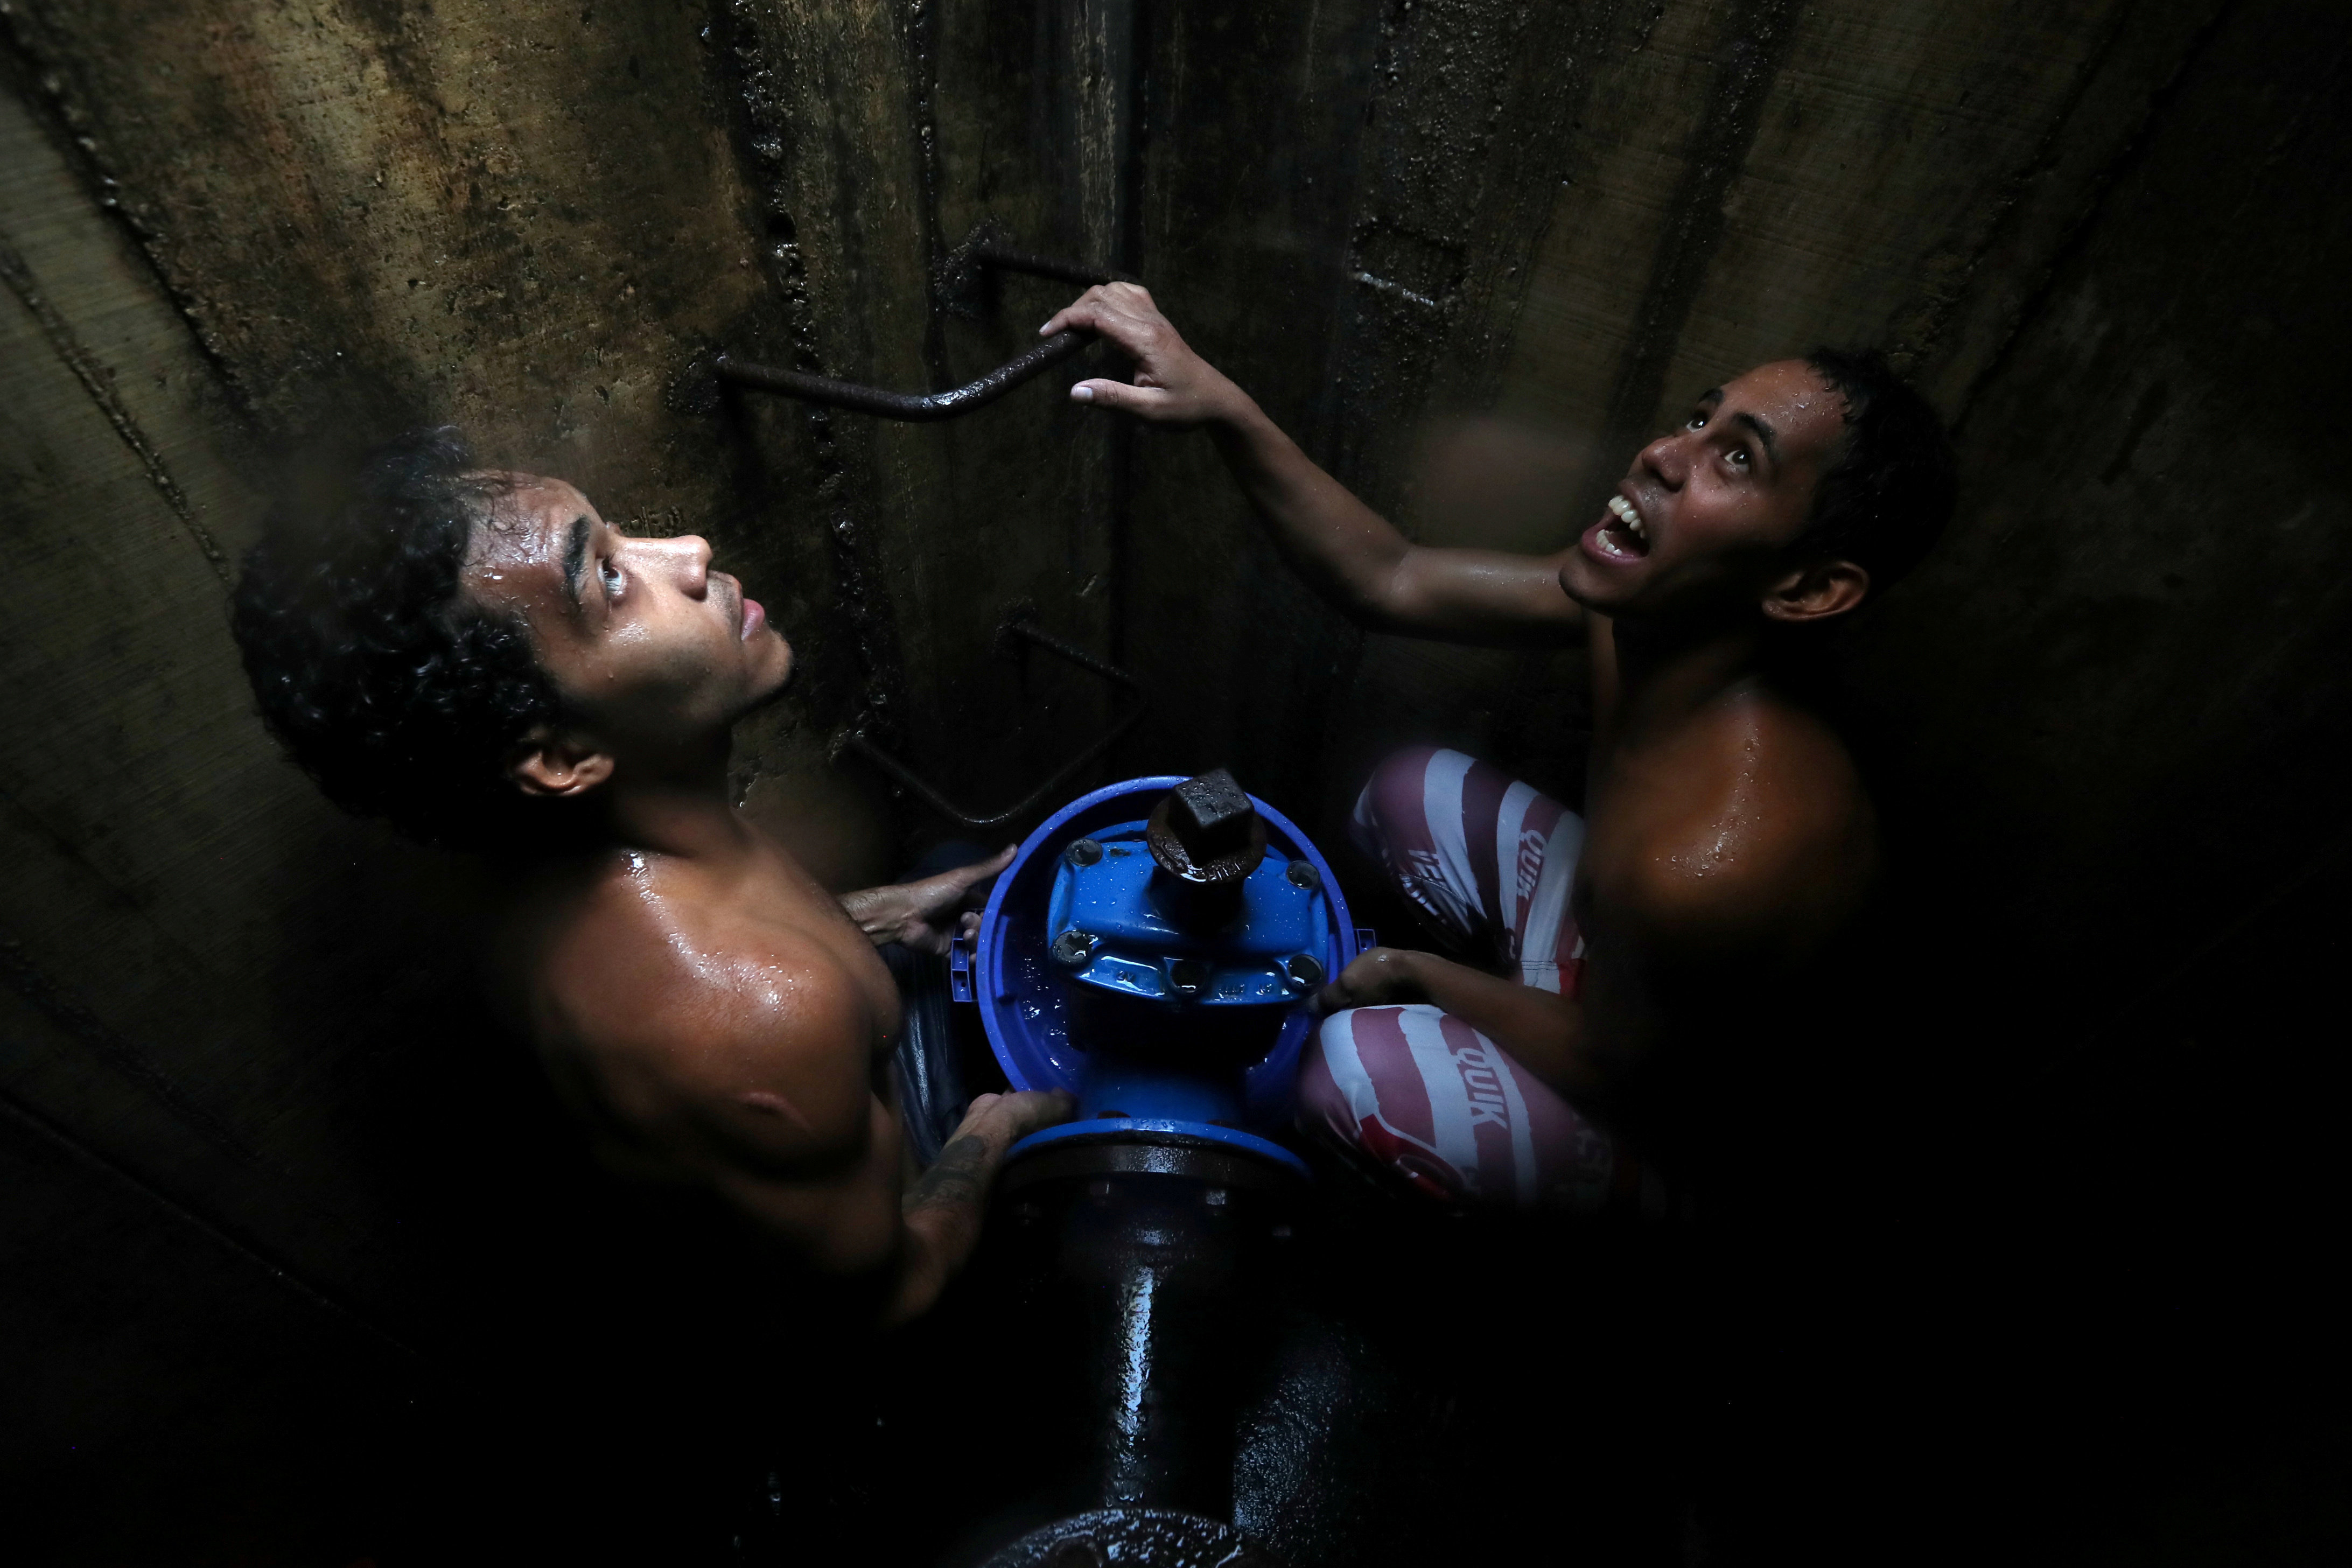 Locals collect water from an underground water main pipeline in Caracas, Venezuela, on March 12, 2019.